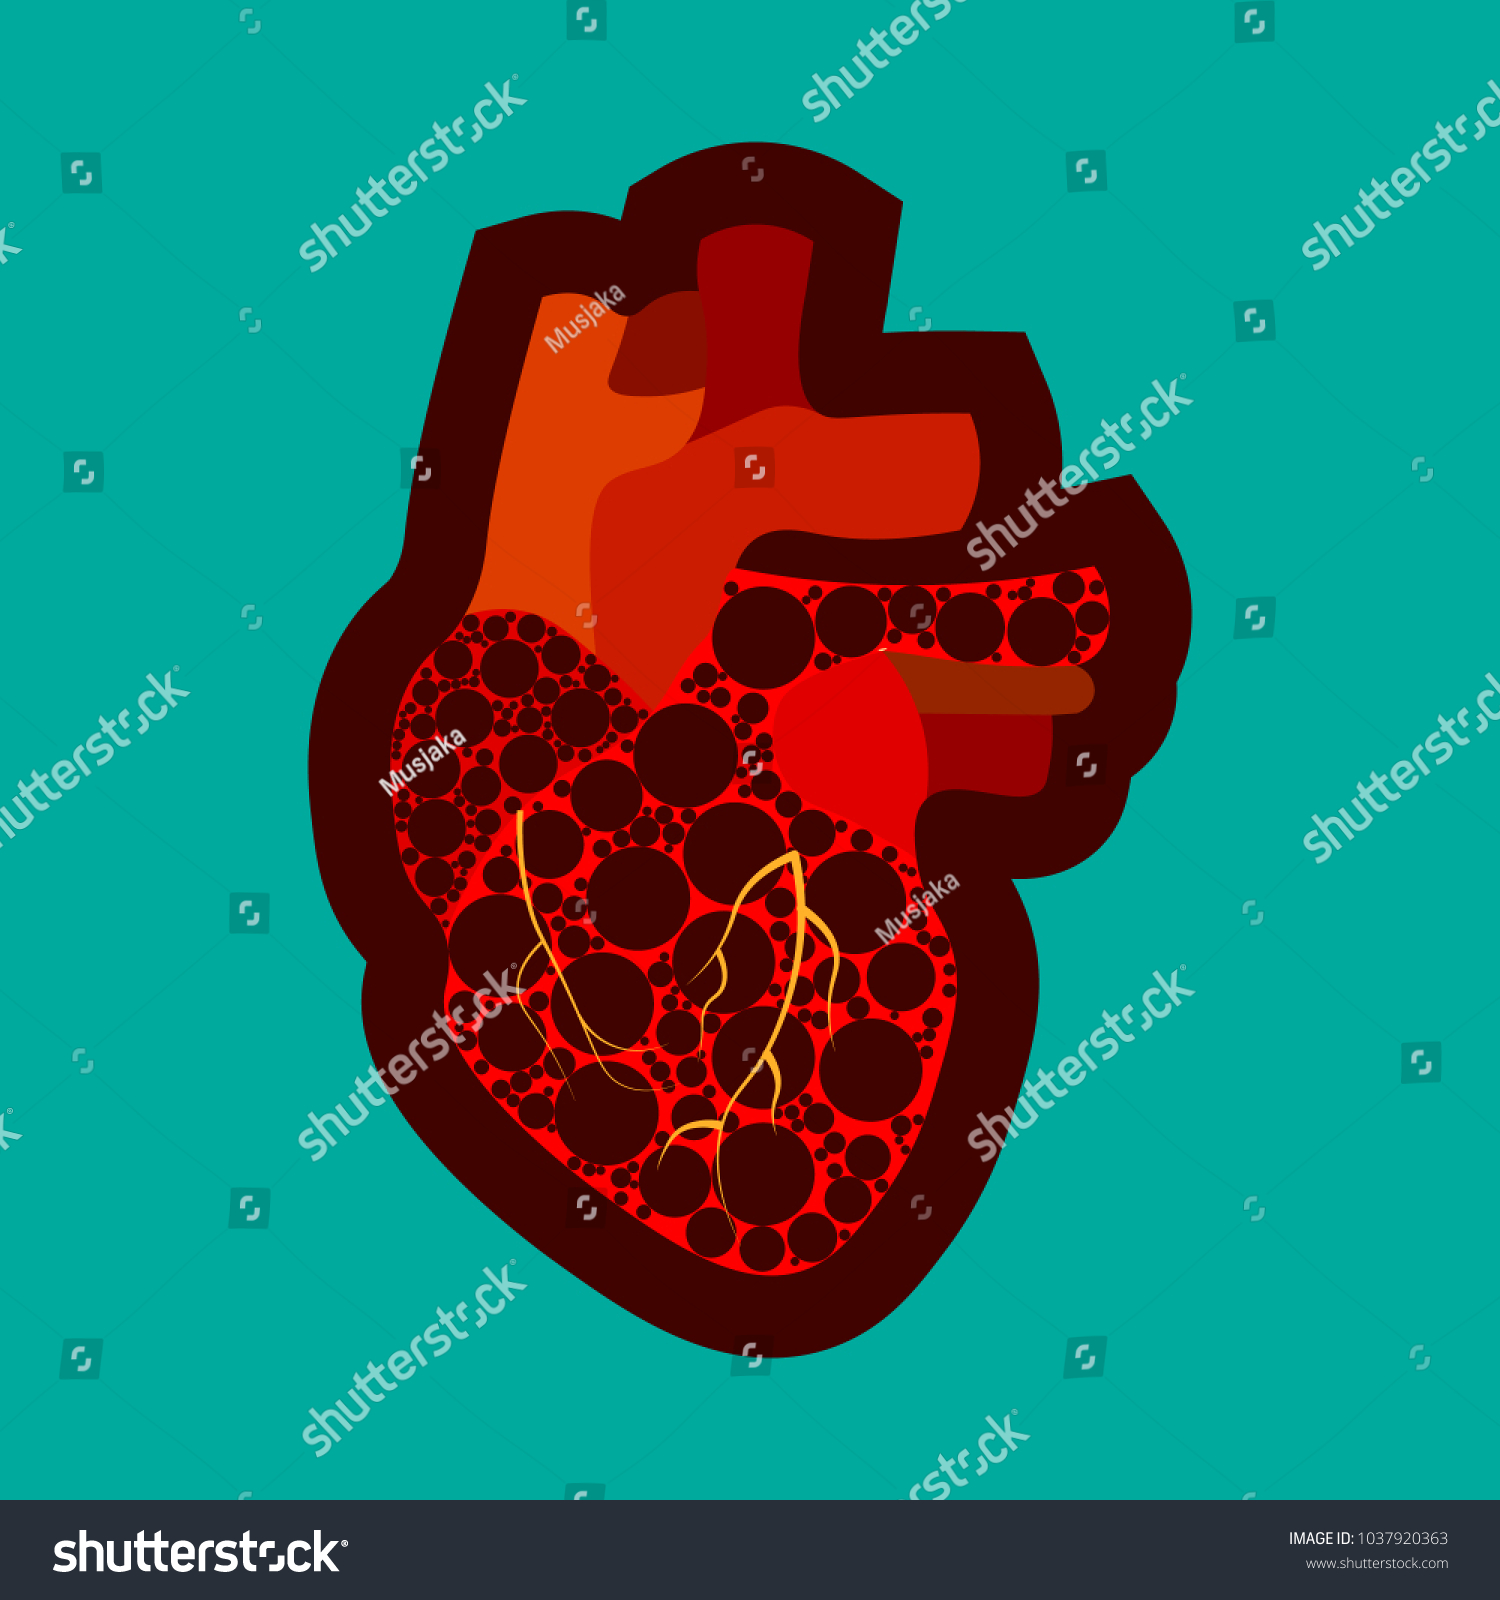 Congenital Heart Disease Awareness Poster Sad Stock Vector Royalty